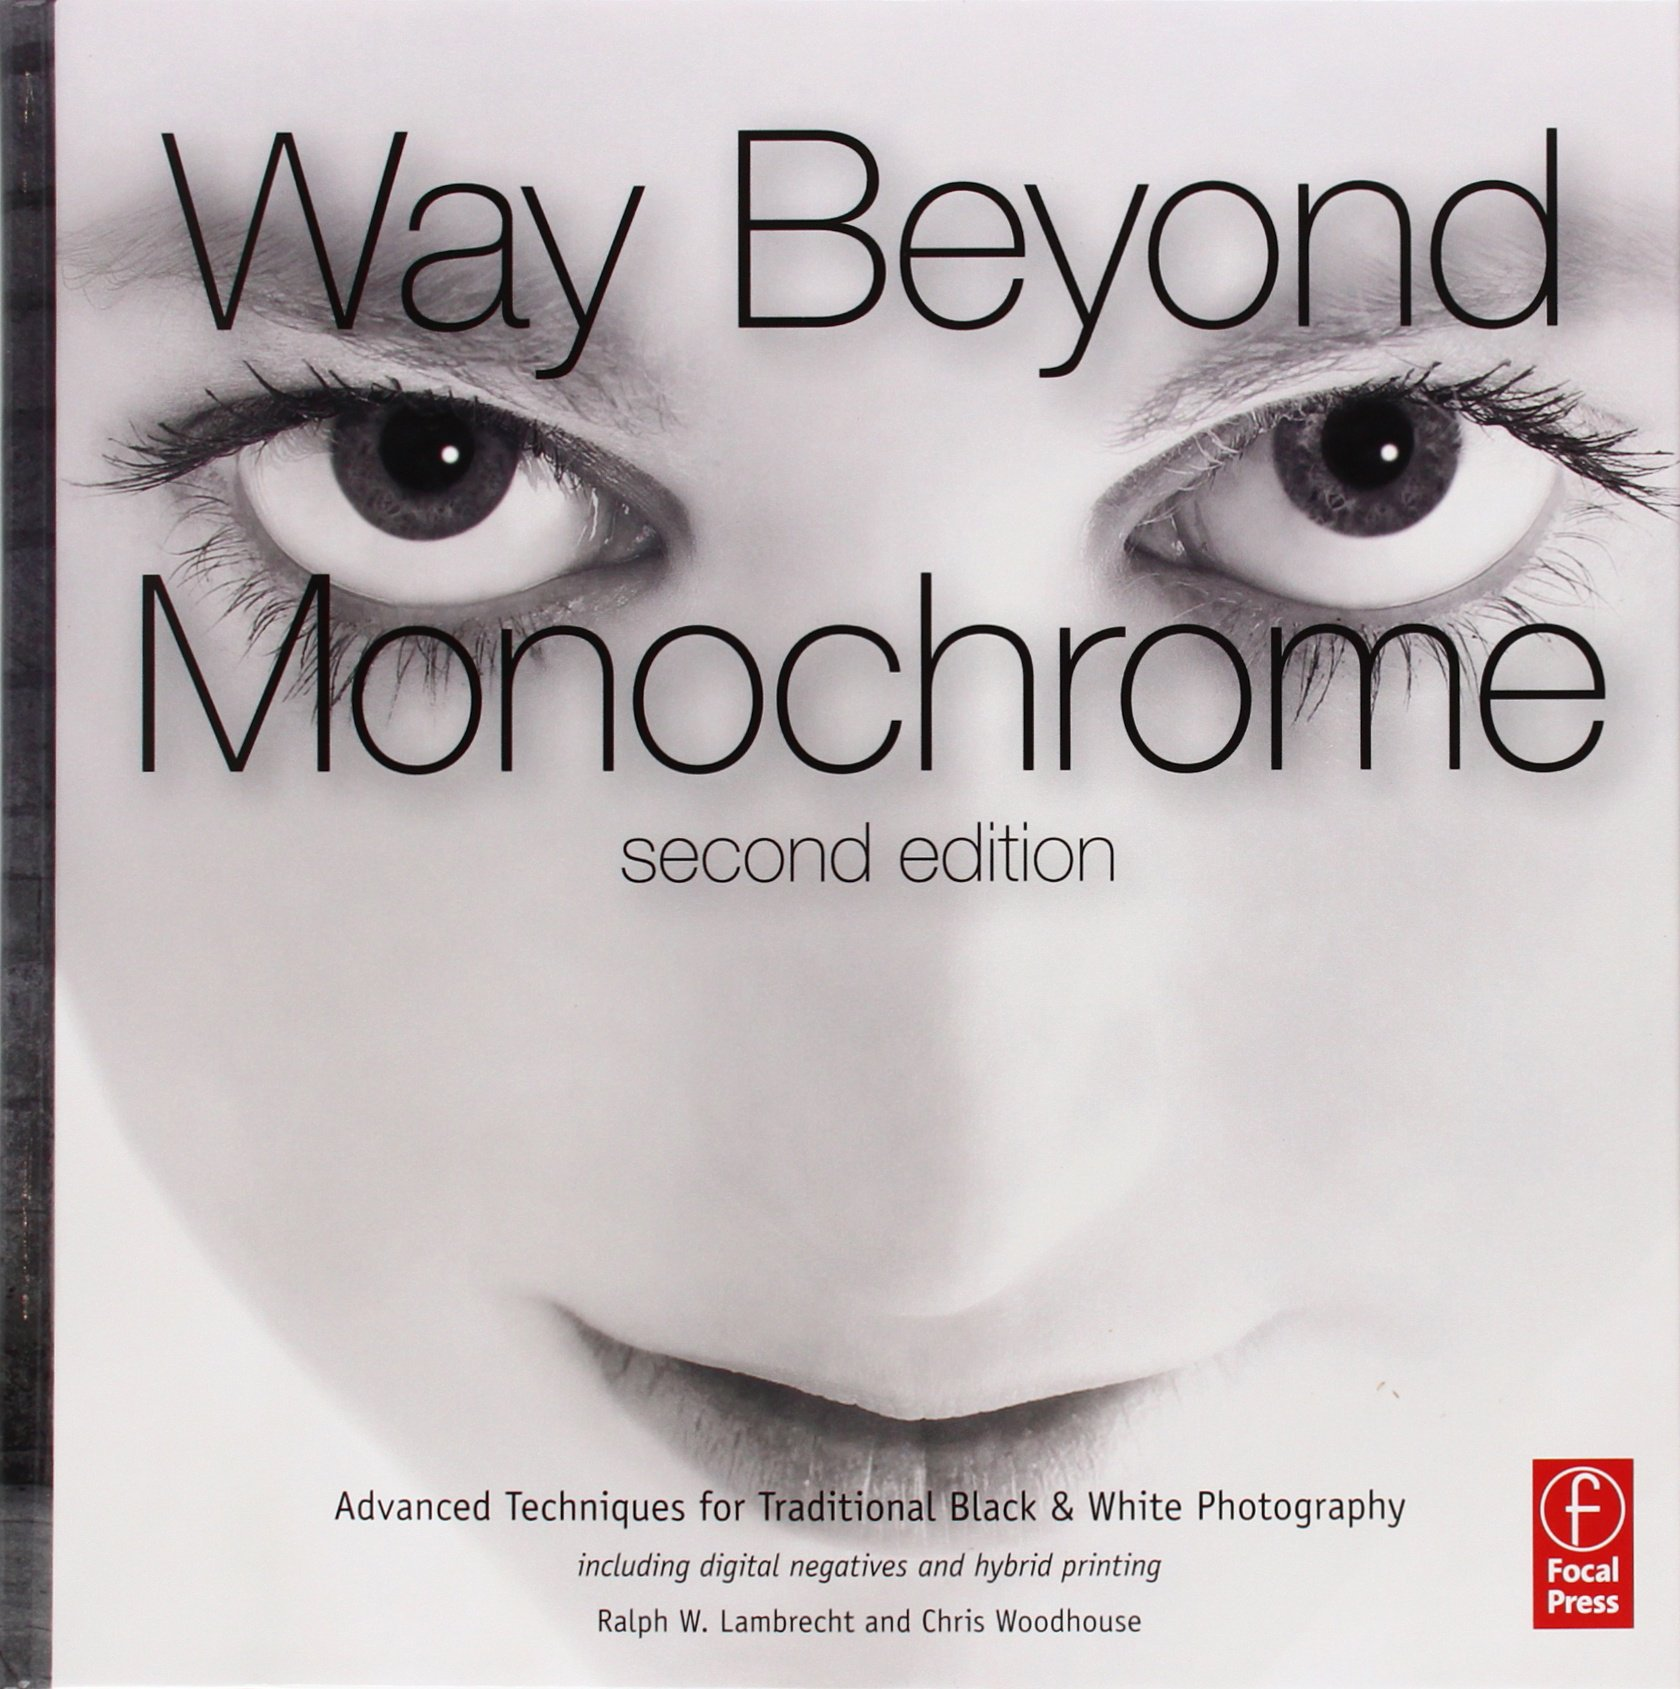 Download Way Beyond Monochrome 2e: Advanced Techniques For Traditional Black & White Photography Including Digital Negatives And Hy... 